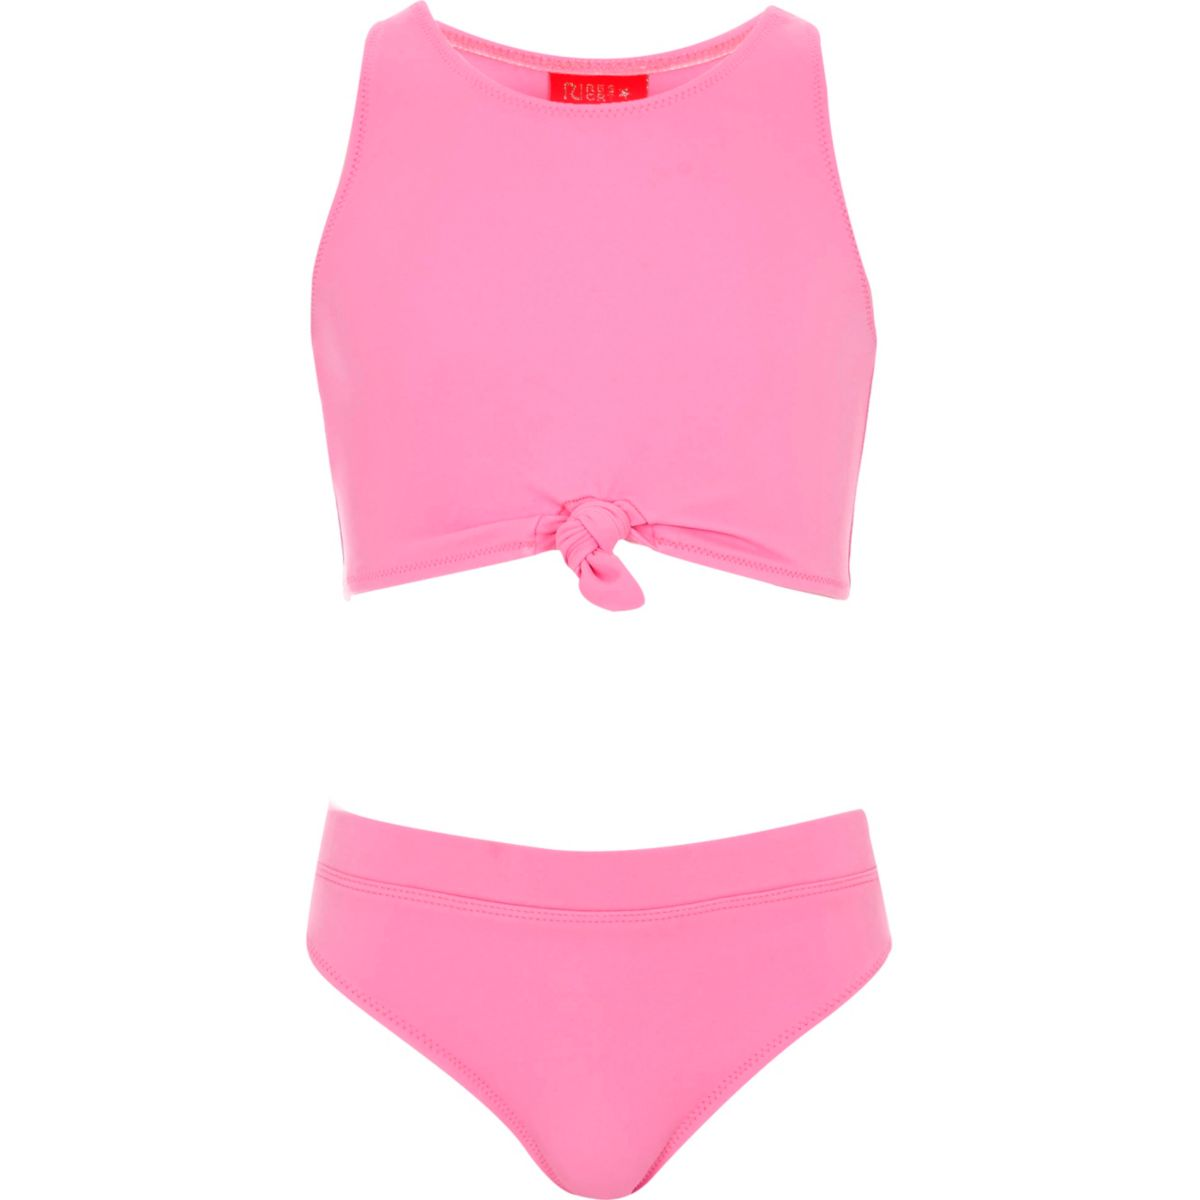 Girls pink knot crop top bikini set